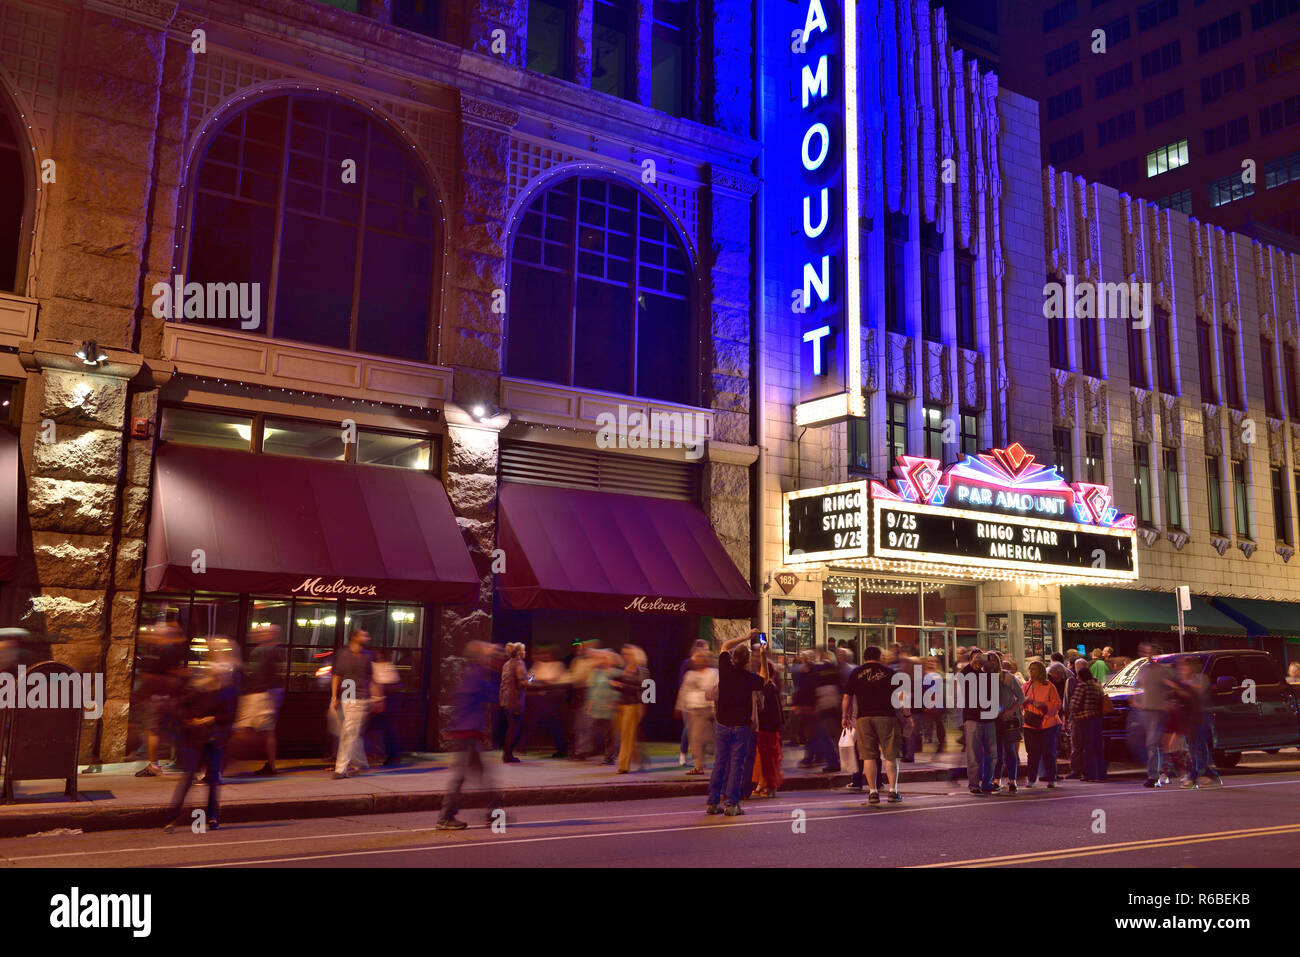 Crowds on street outside Paramount Theatre, Denver, Colorado, after Ringo Starr American tour performance - Stock Image